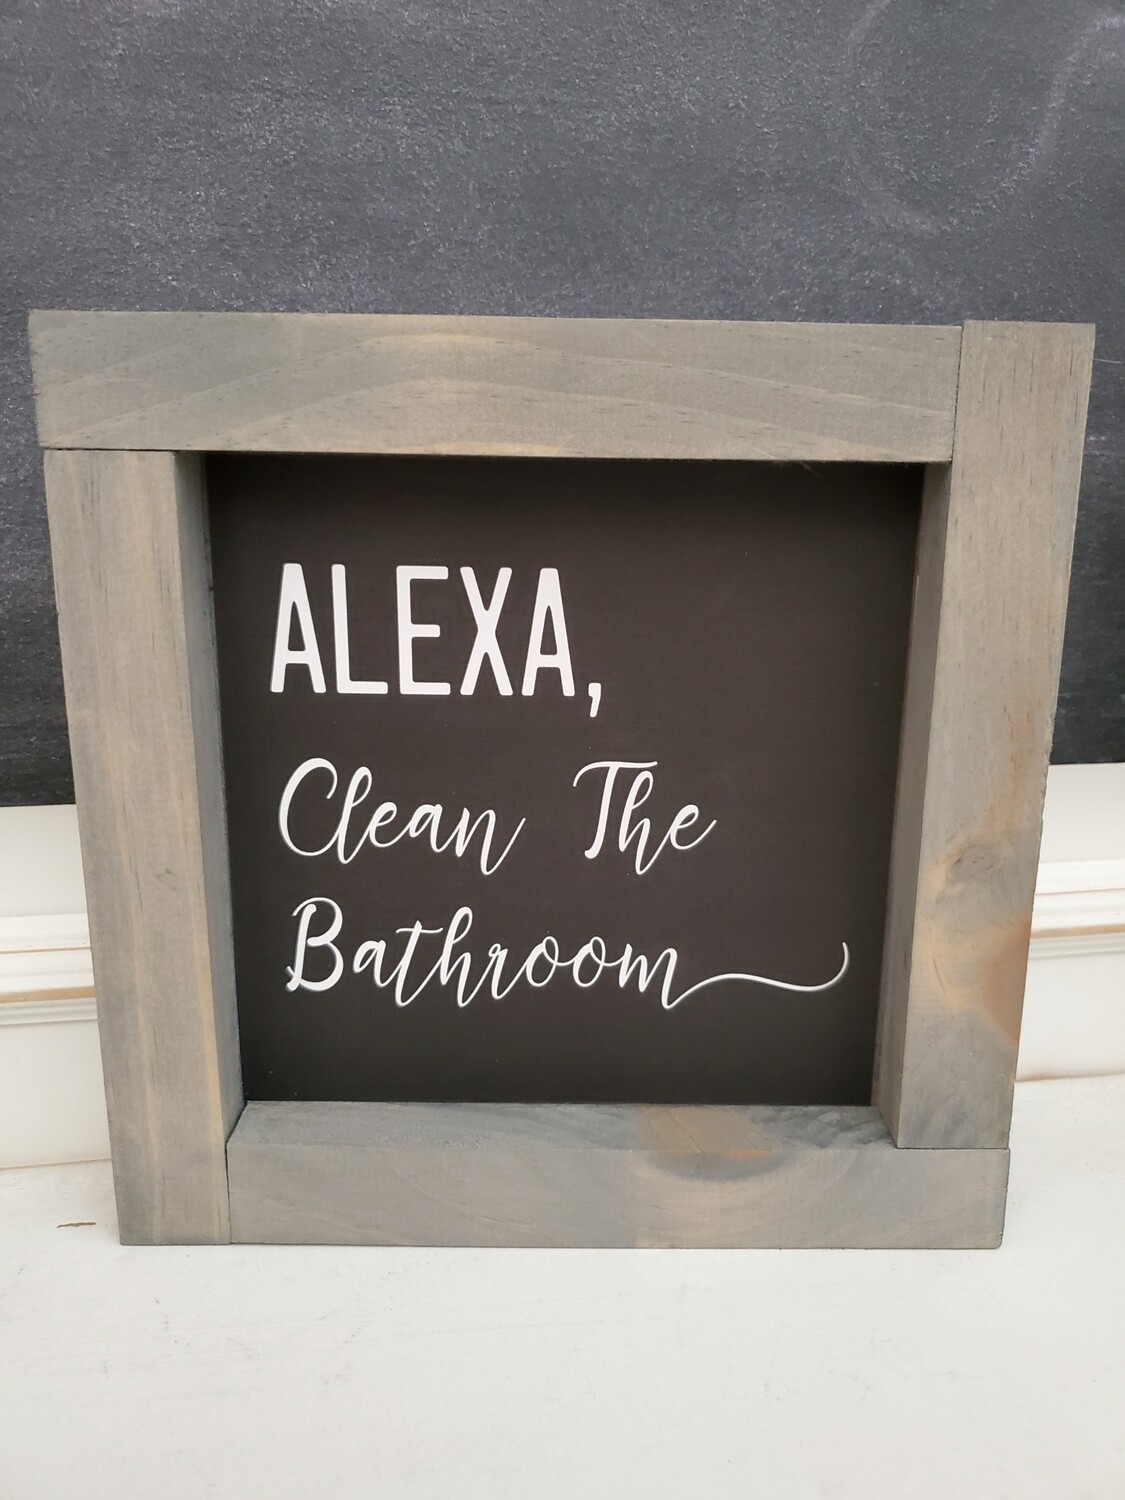 Wall Art - Alexa Clean The Bathroom (gray wash)